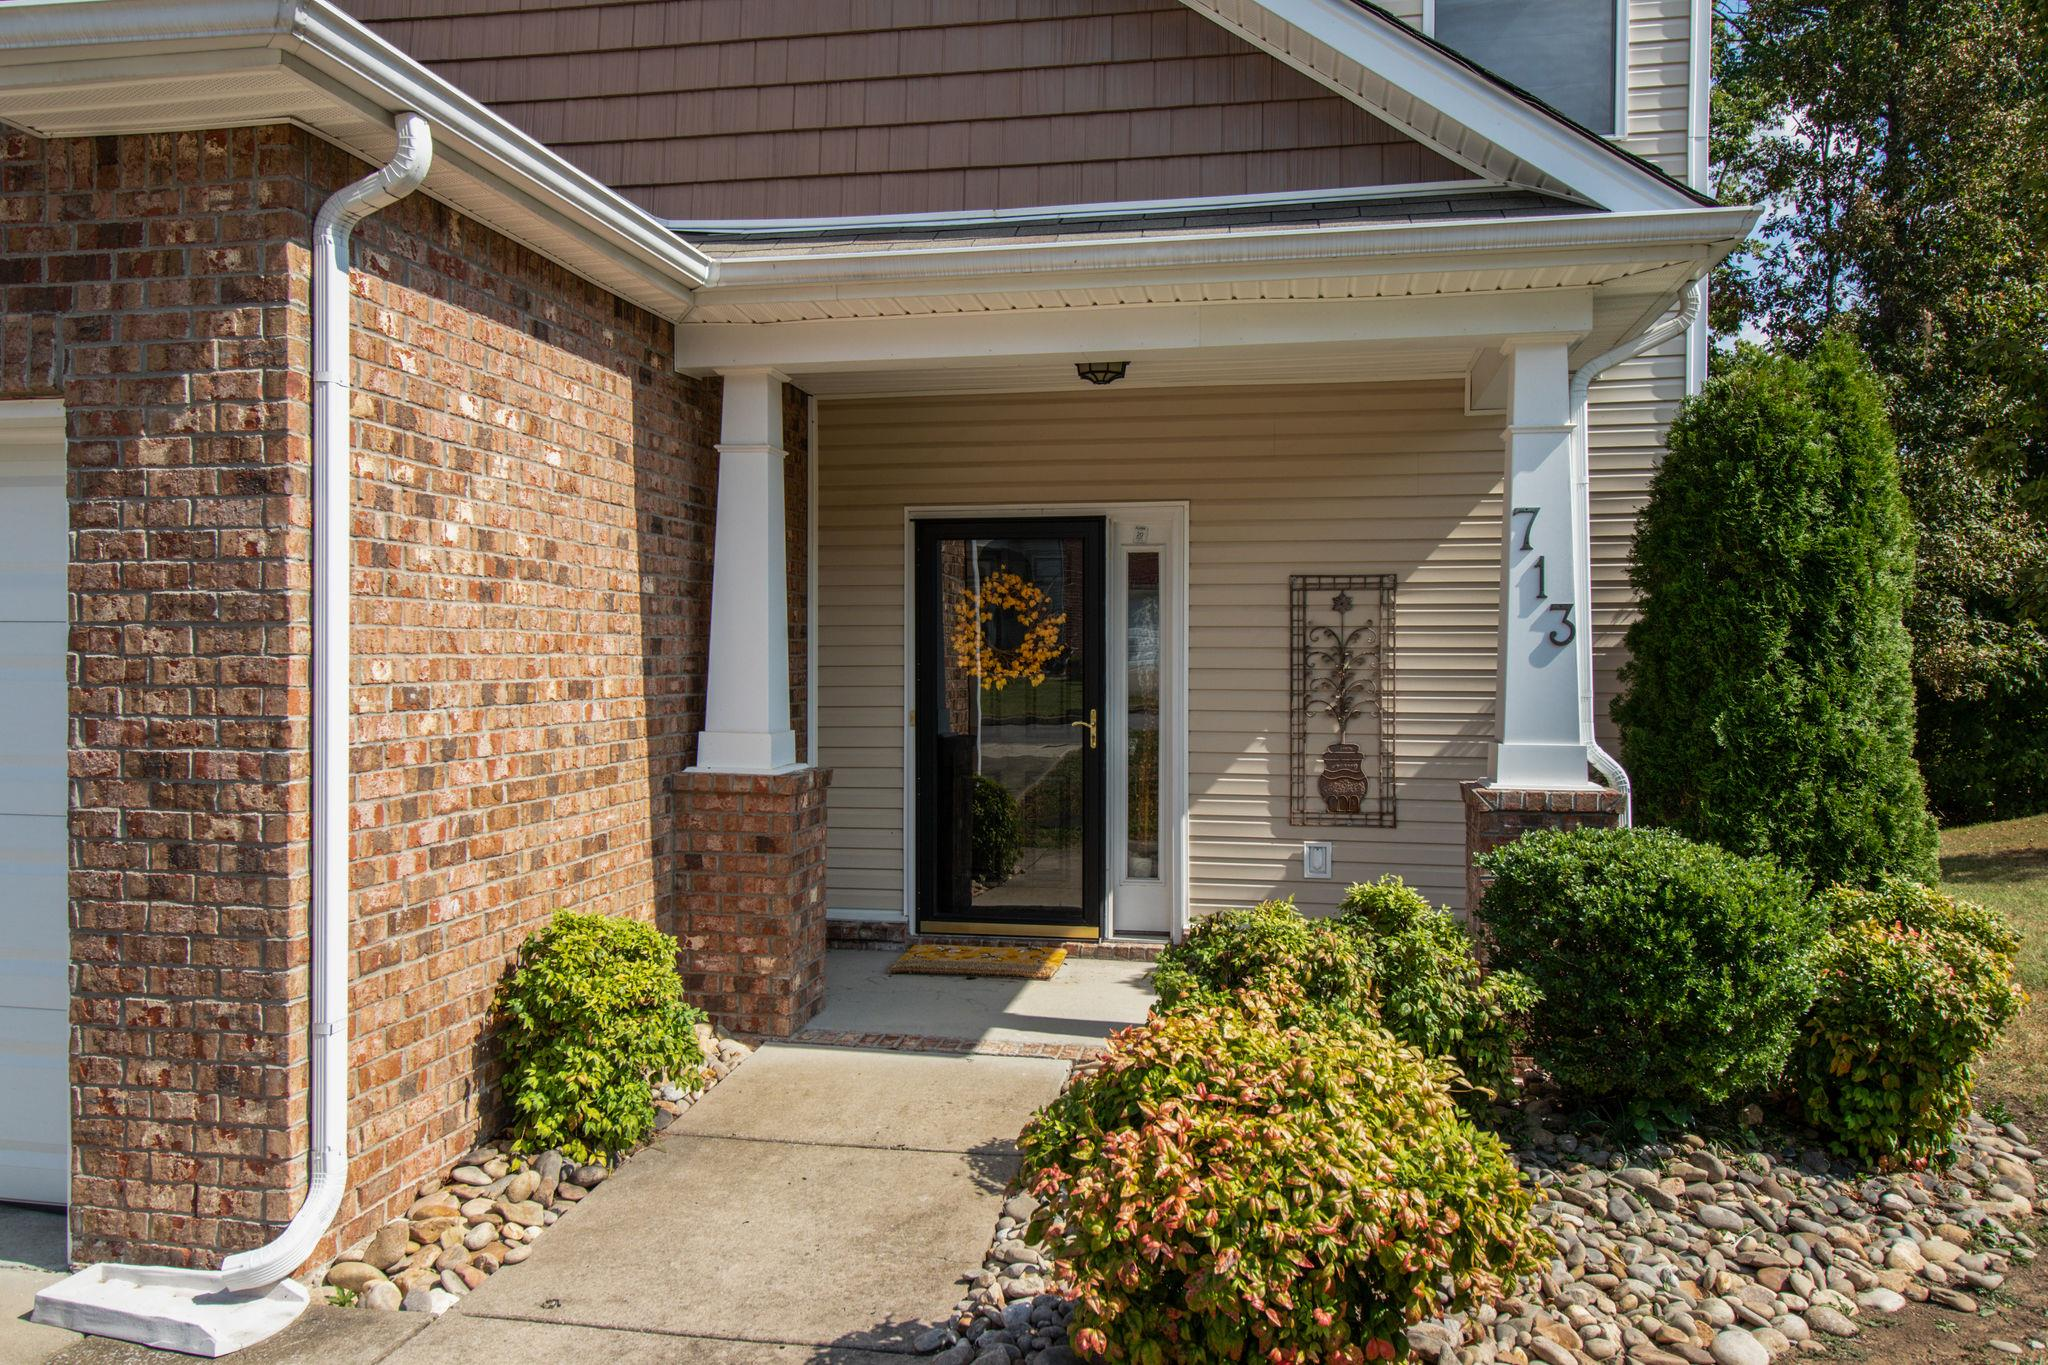 713 Sandbury Pt, Nashville-Antioch in Davidson County County, TN 37013 Home for Sale